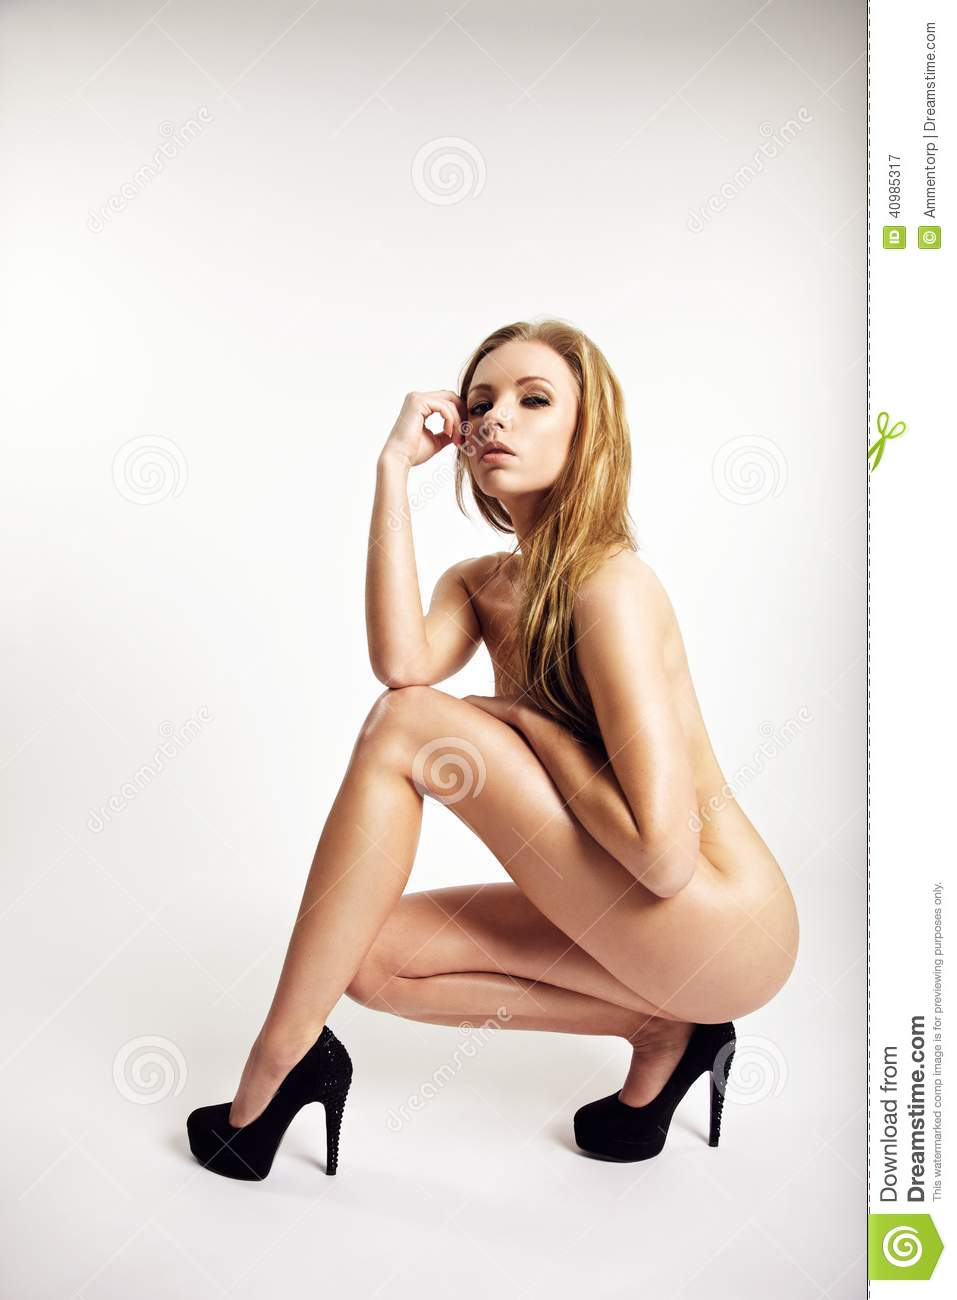 Artistic Nude Woman Posing On White Background Stock Image - Image ...